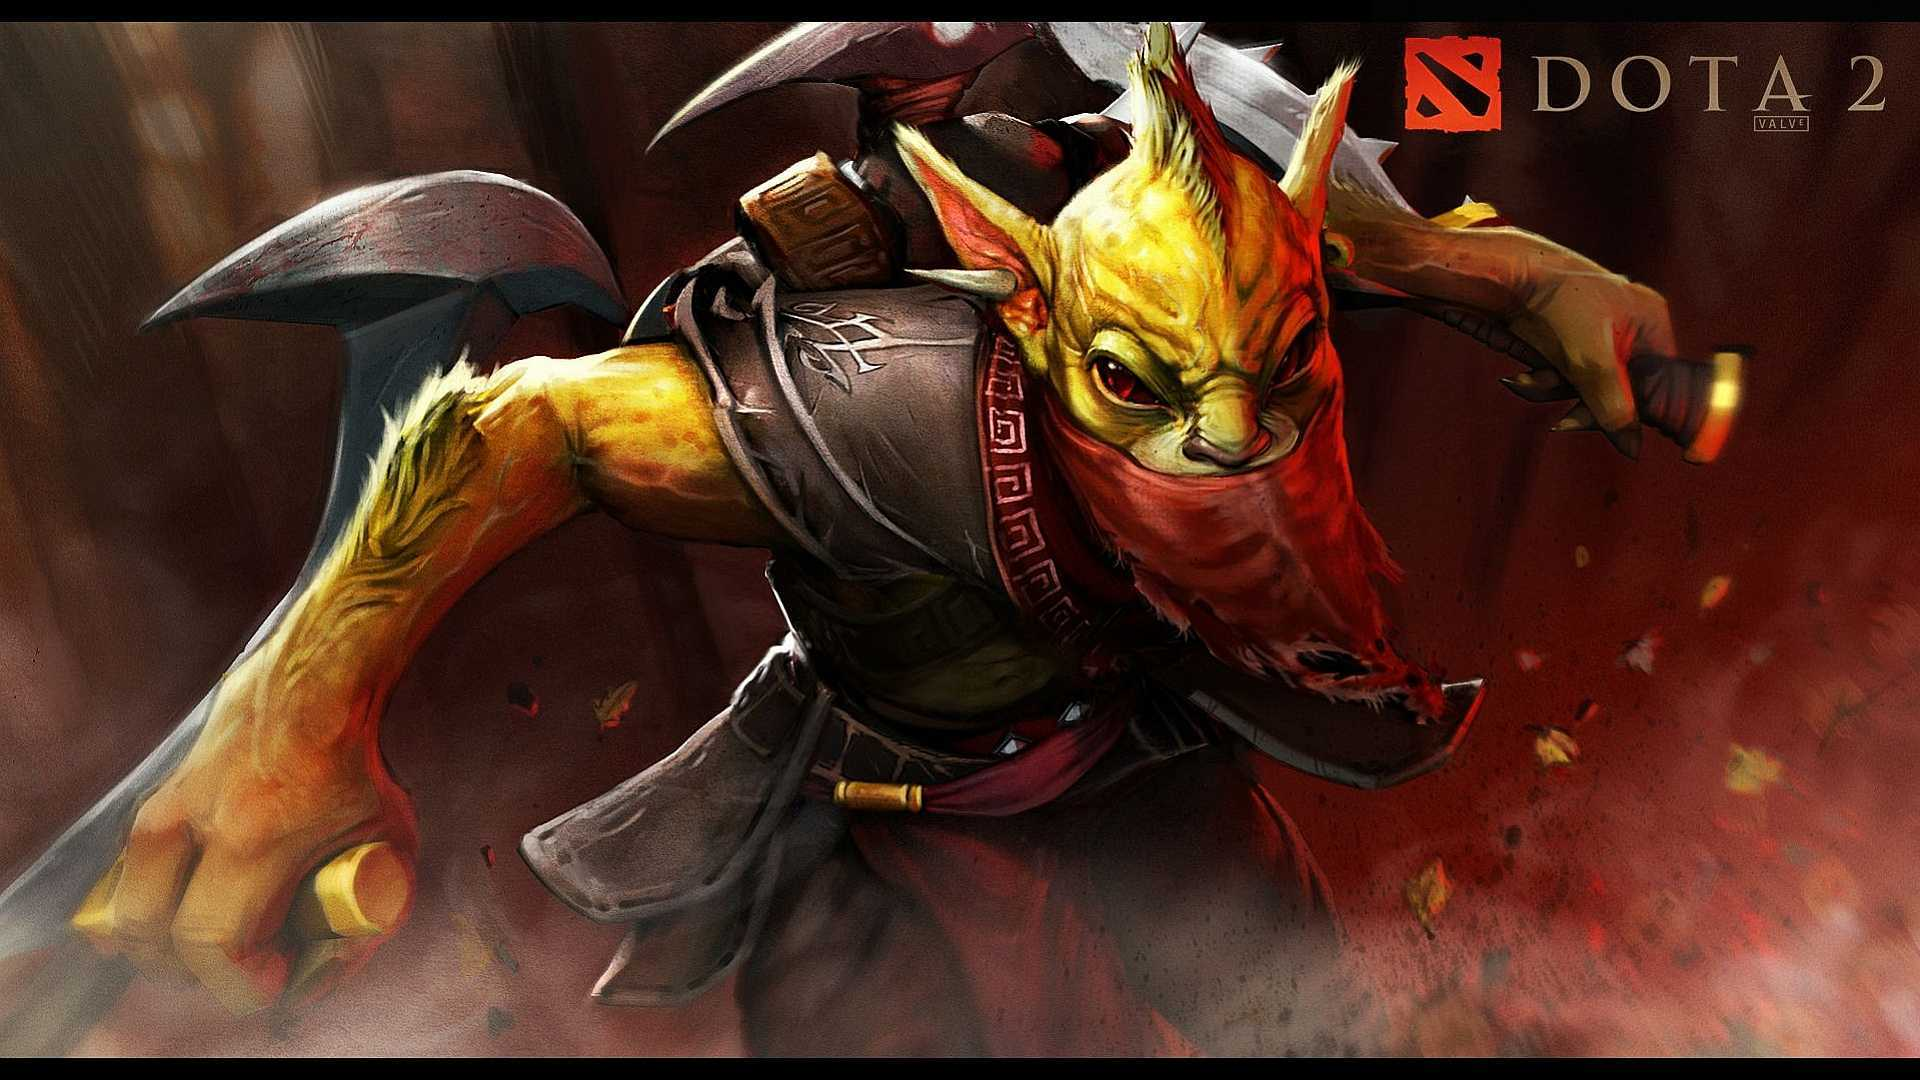 Amazing Dota 2 Hd Gaming Background For Mobile Wallpaper.